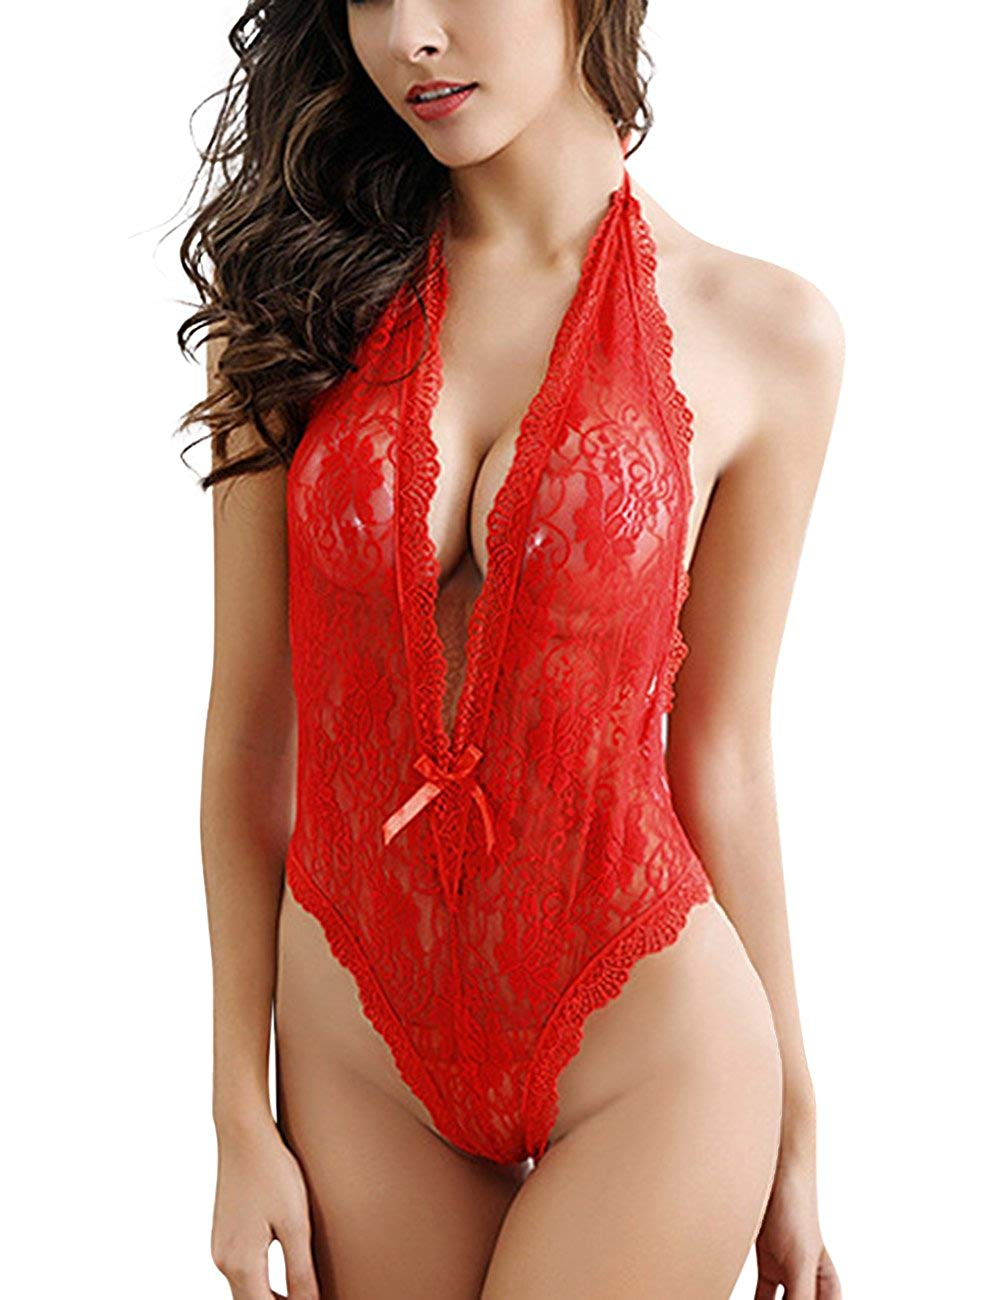 cd833a59c0cf6 Get Quotations · Women Sexy Lingerie Floral Lace Deep V-neck Babydoll Open  Back Teddy Bodysuit